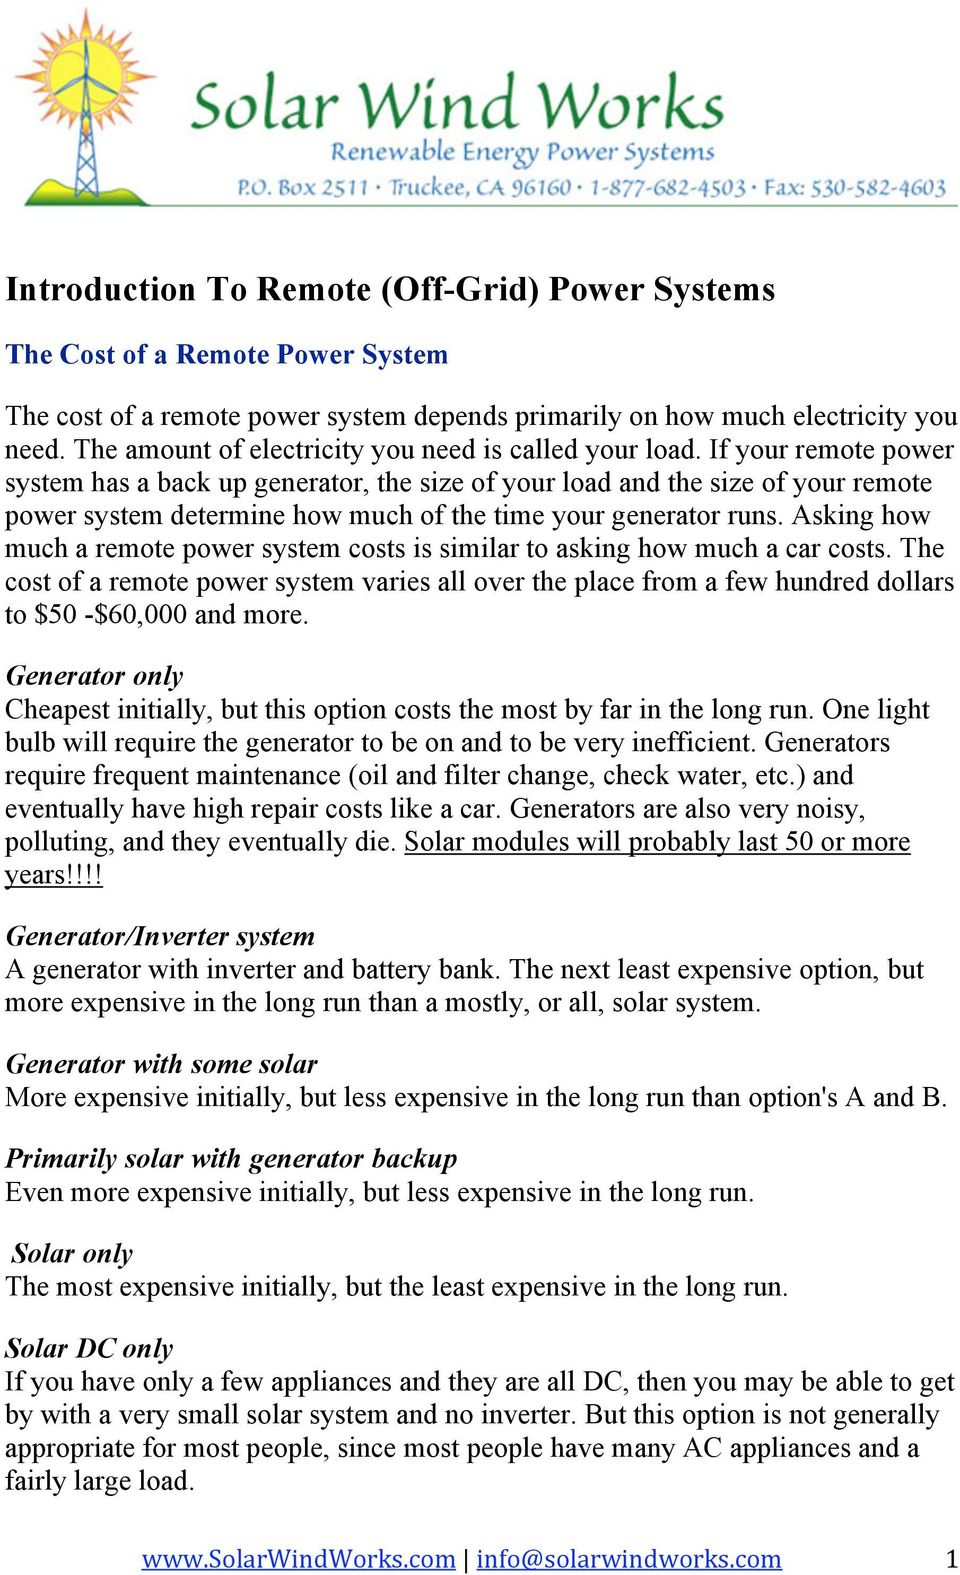 If your remote power system has a back up generator, the size of your load and the size of your remote power system determine how much of the time your generator runs.